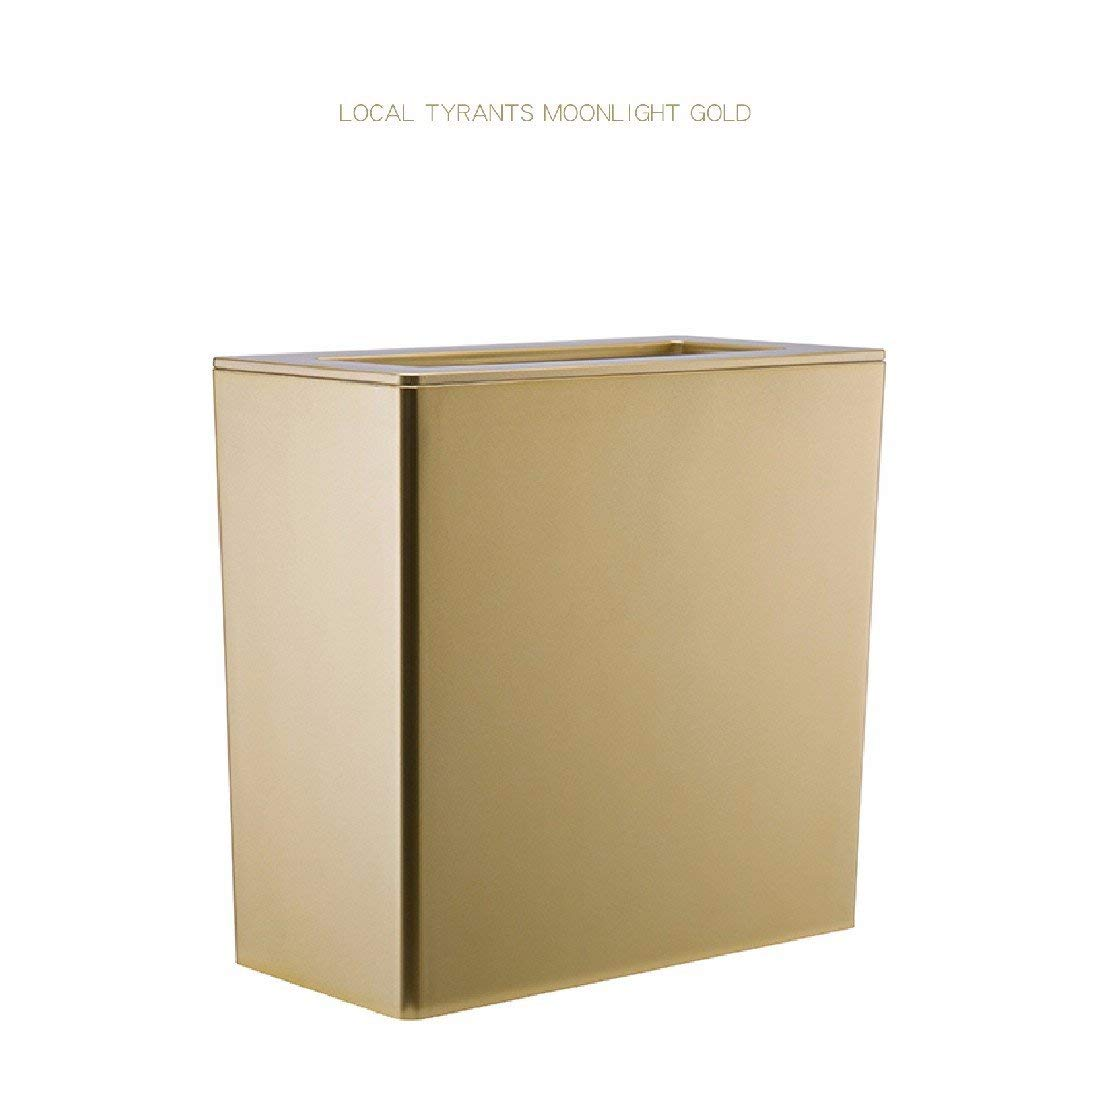 Cheap Lowes Outdoor Garbage Cans Find Lowes Outdoor Garbage Cans Deals On Line At Alibaba Com